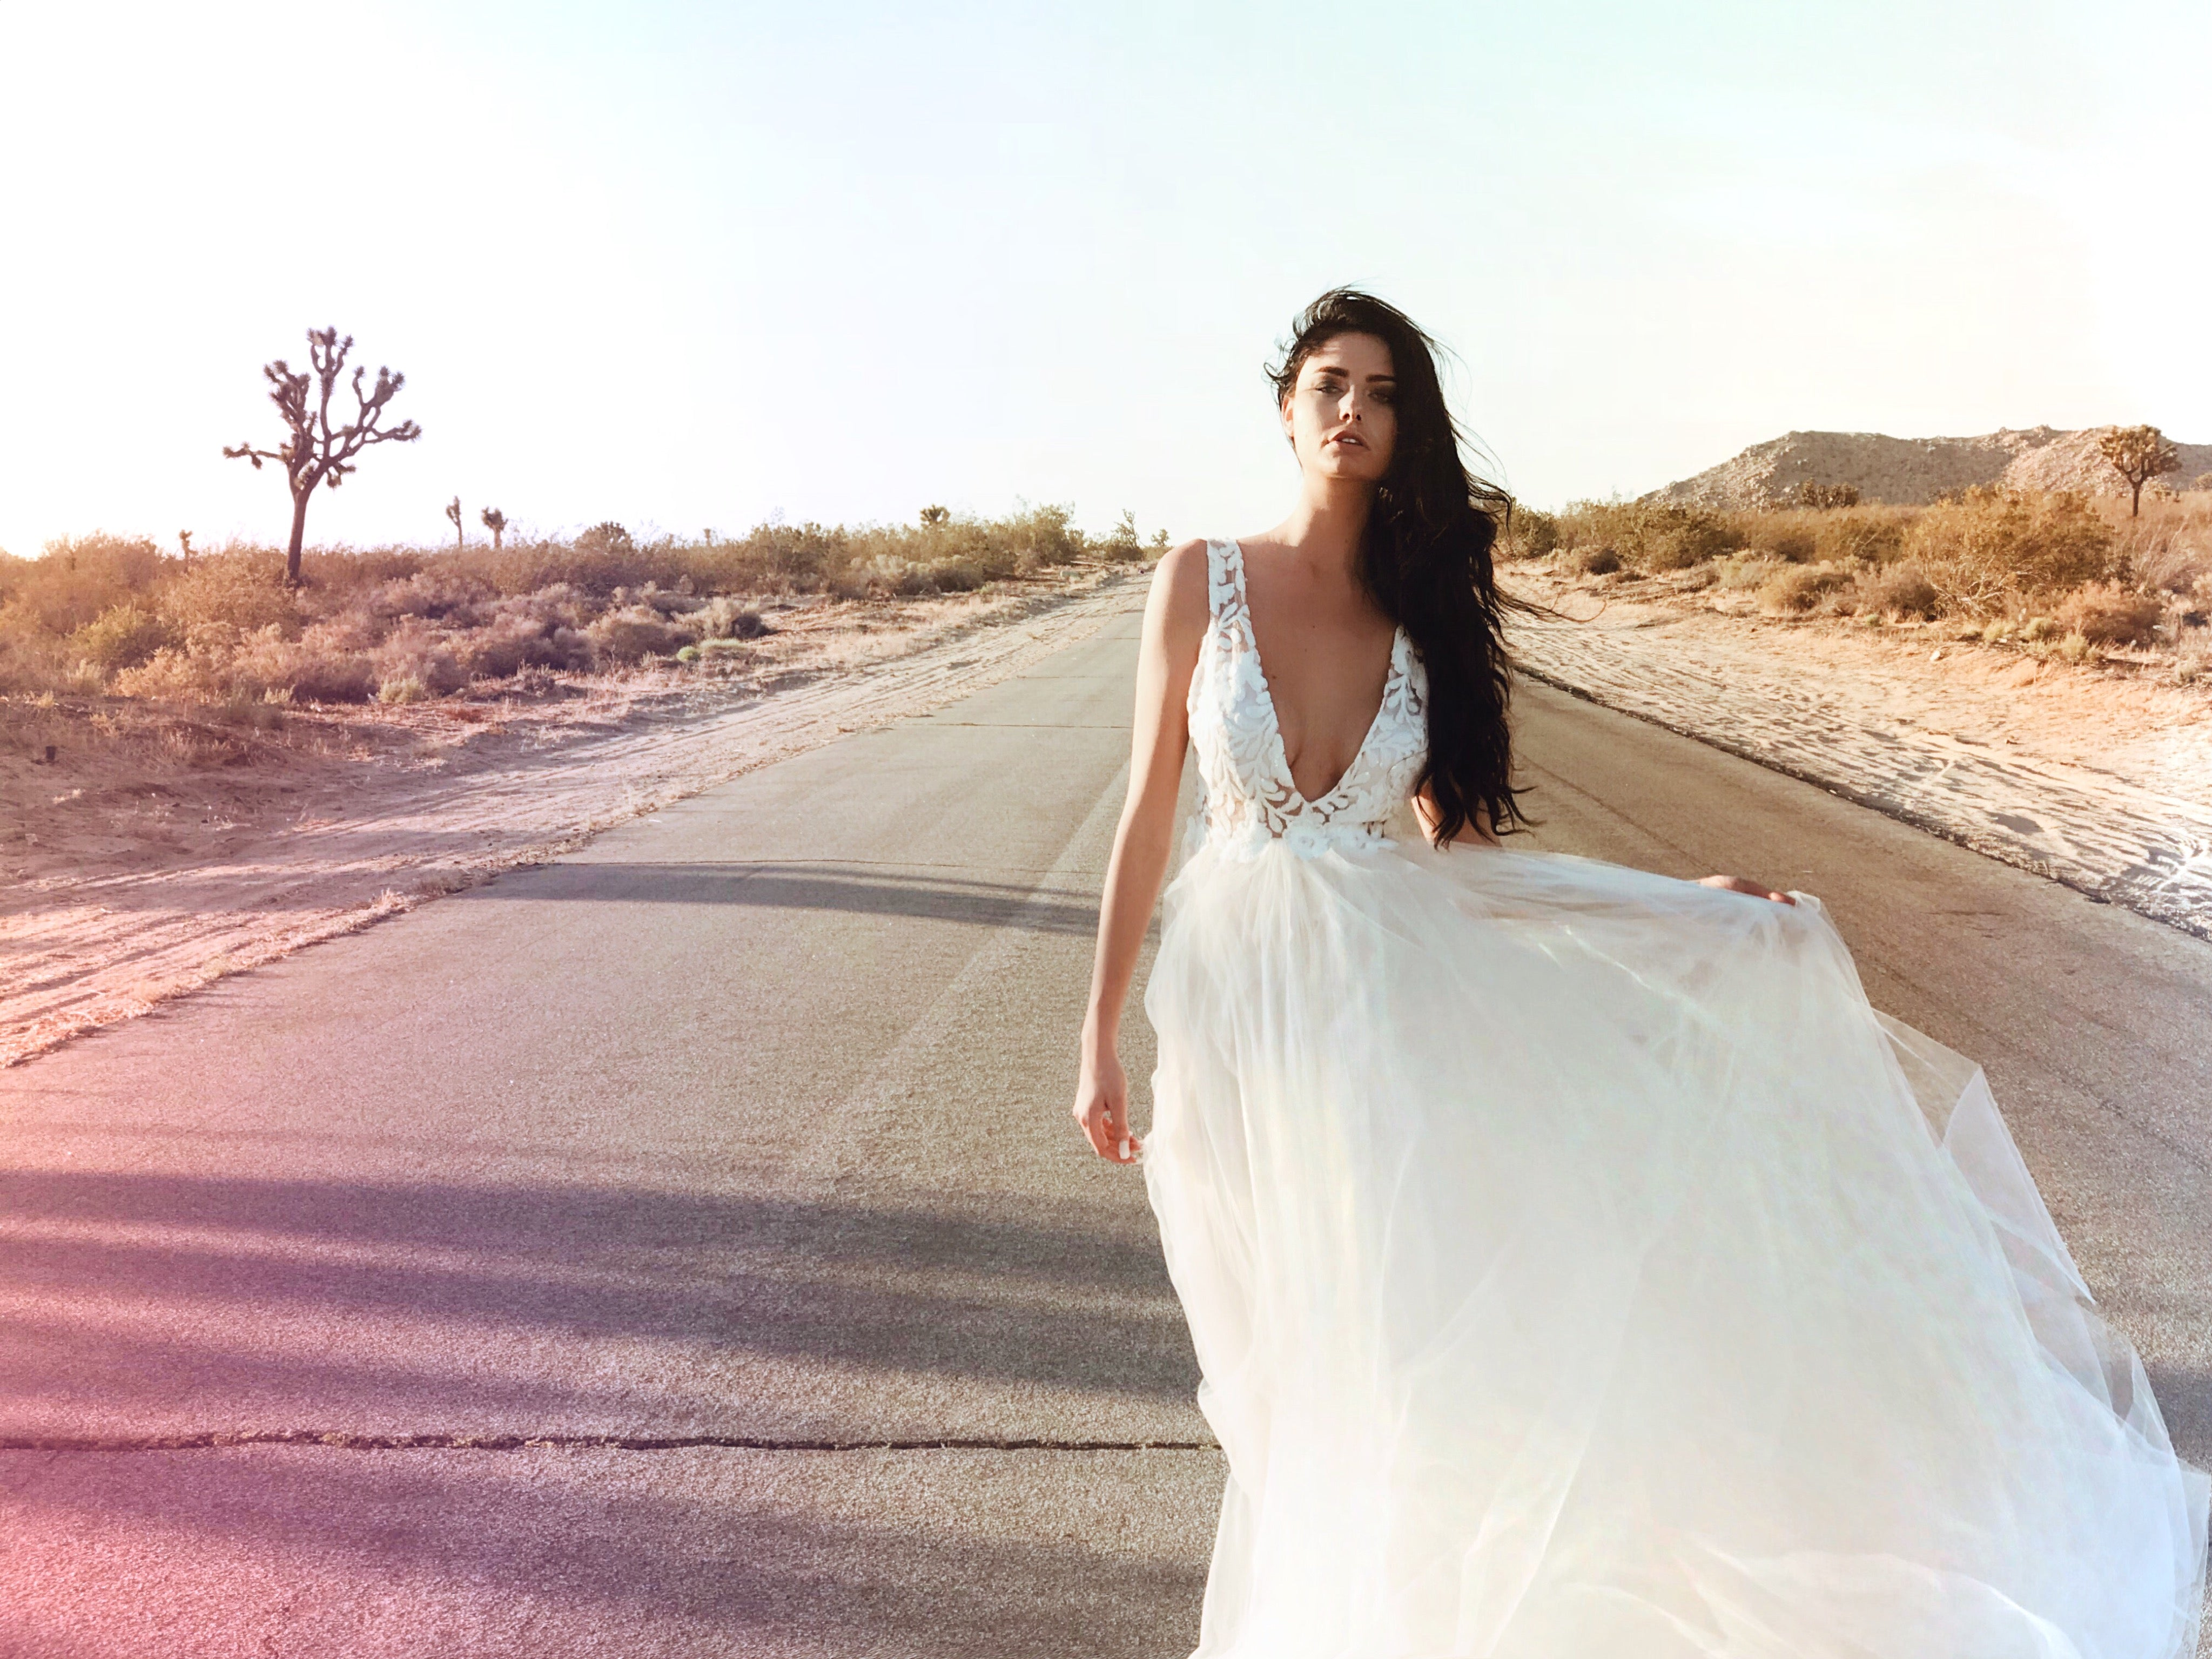 Tulle and sequin v-neck illusion designer wedding gown by Lauren Elaine Bridal